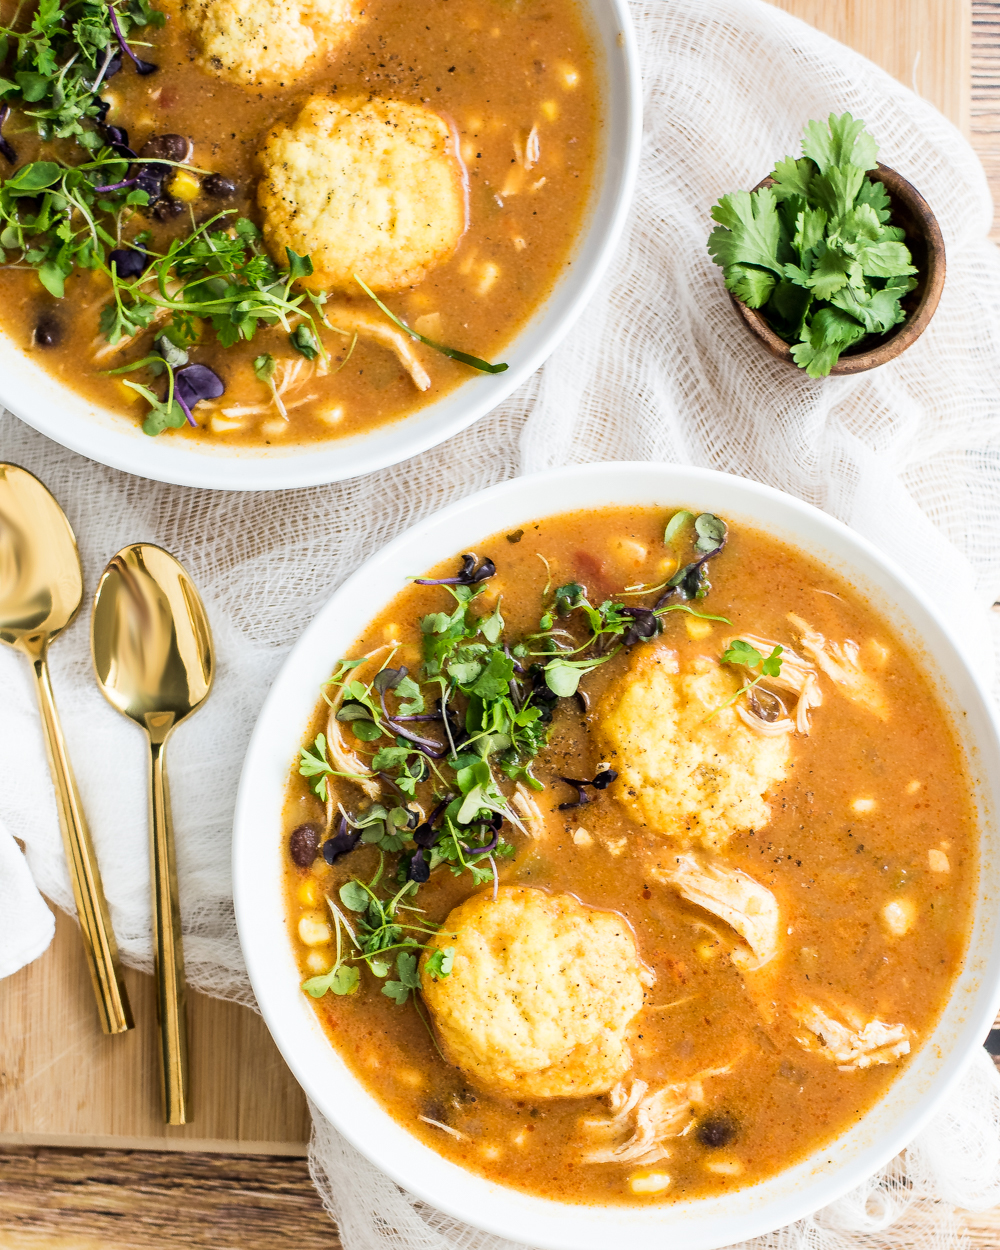 Southwestern chicken soup with cornmeal dumplings is a fun take on traditional chicken soup and dumpling with a spicy twist!